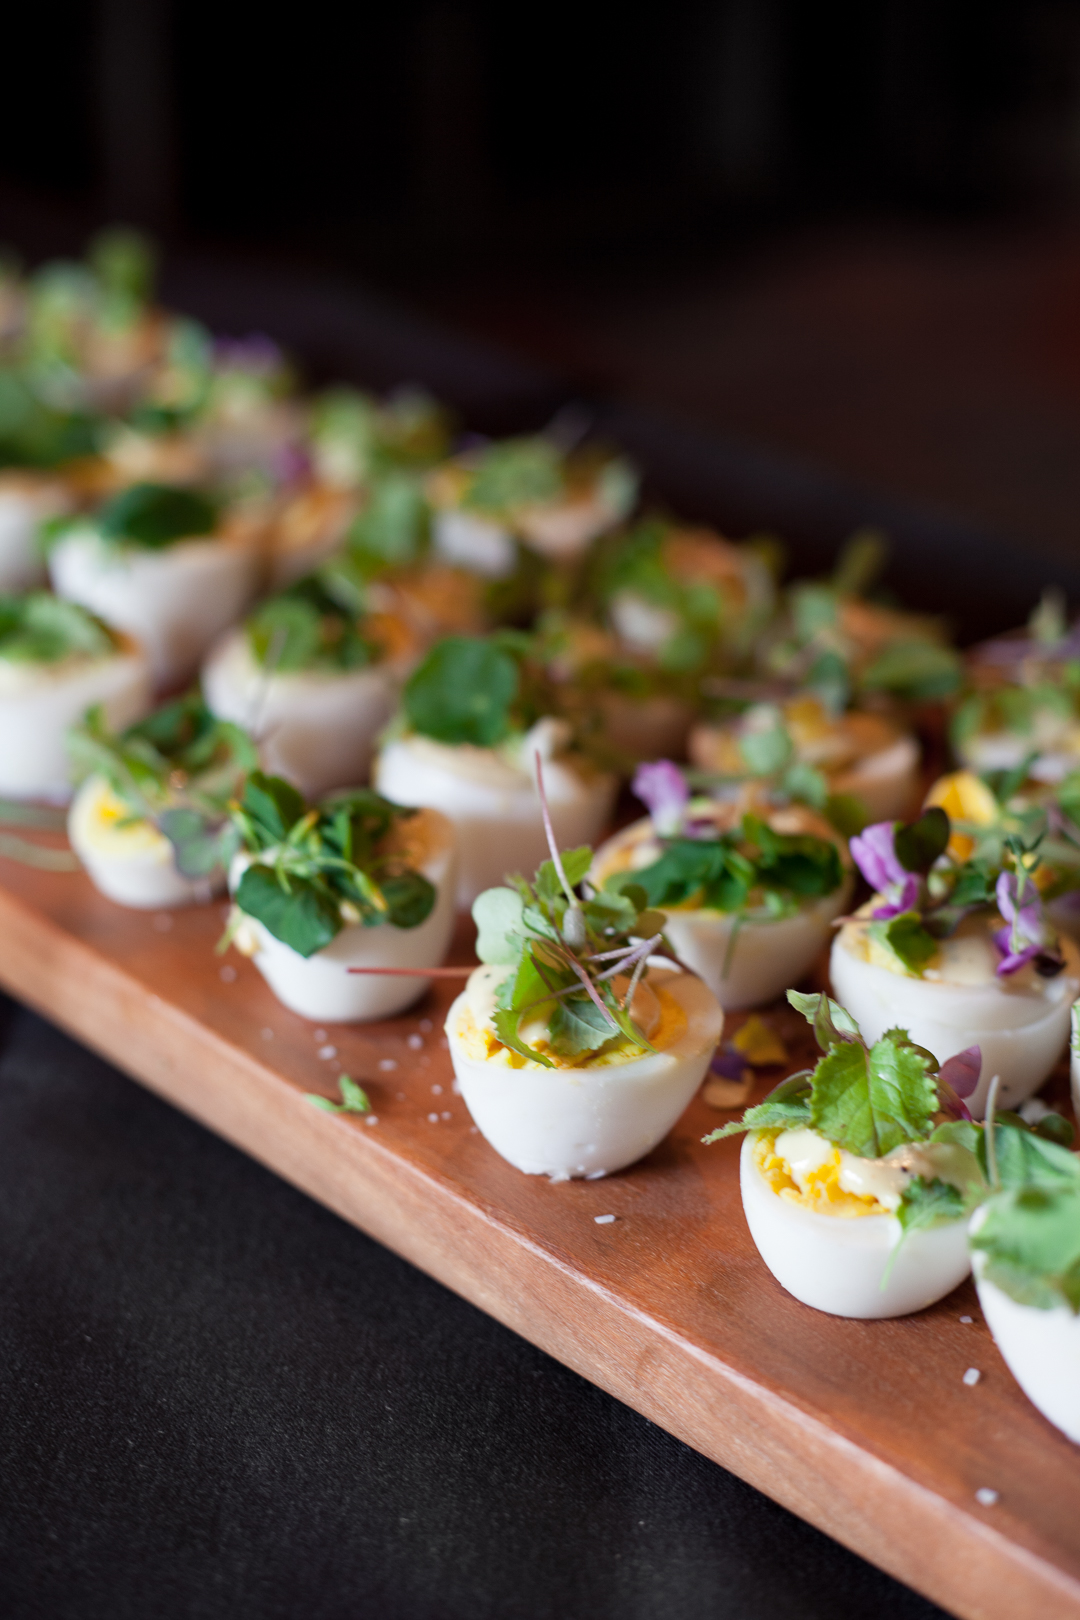 deconstructed deviled eggs with marigold aioli - Virginia women in food dinner